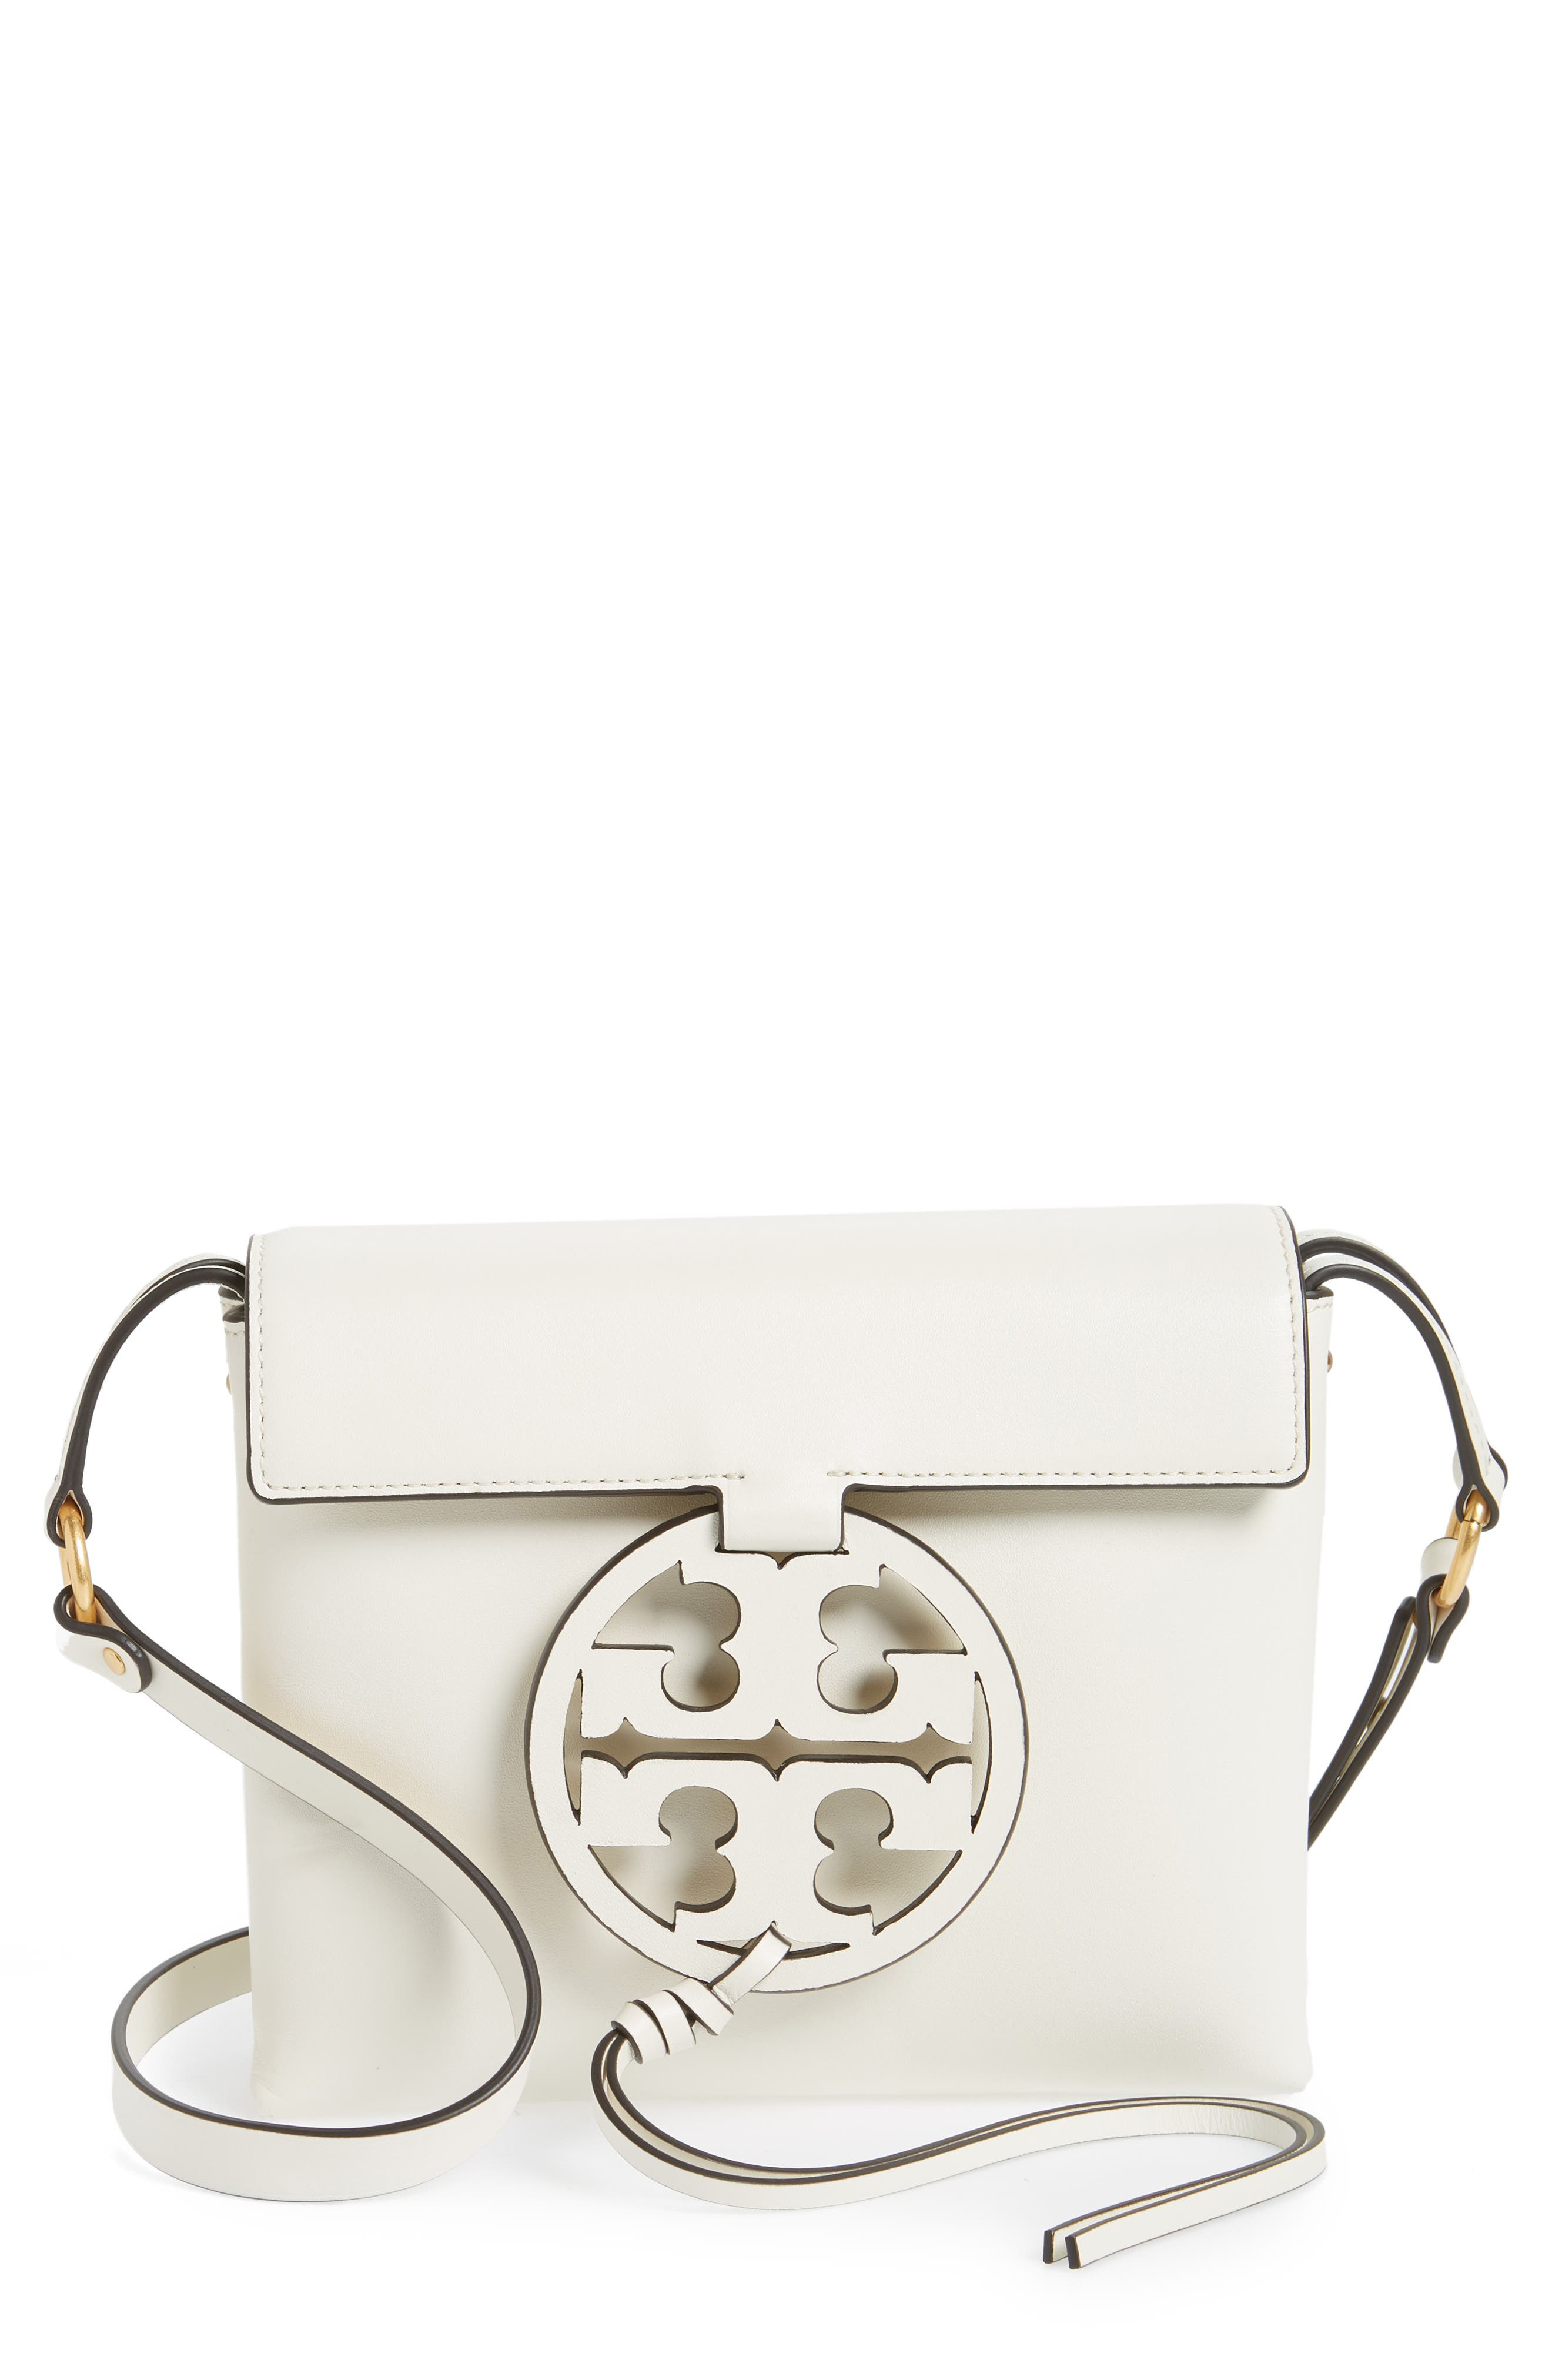 TORY BURCH Miller Leather Crossbody Bag, Main, color, 107